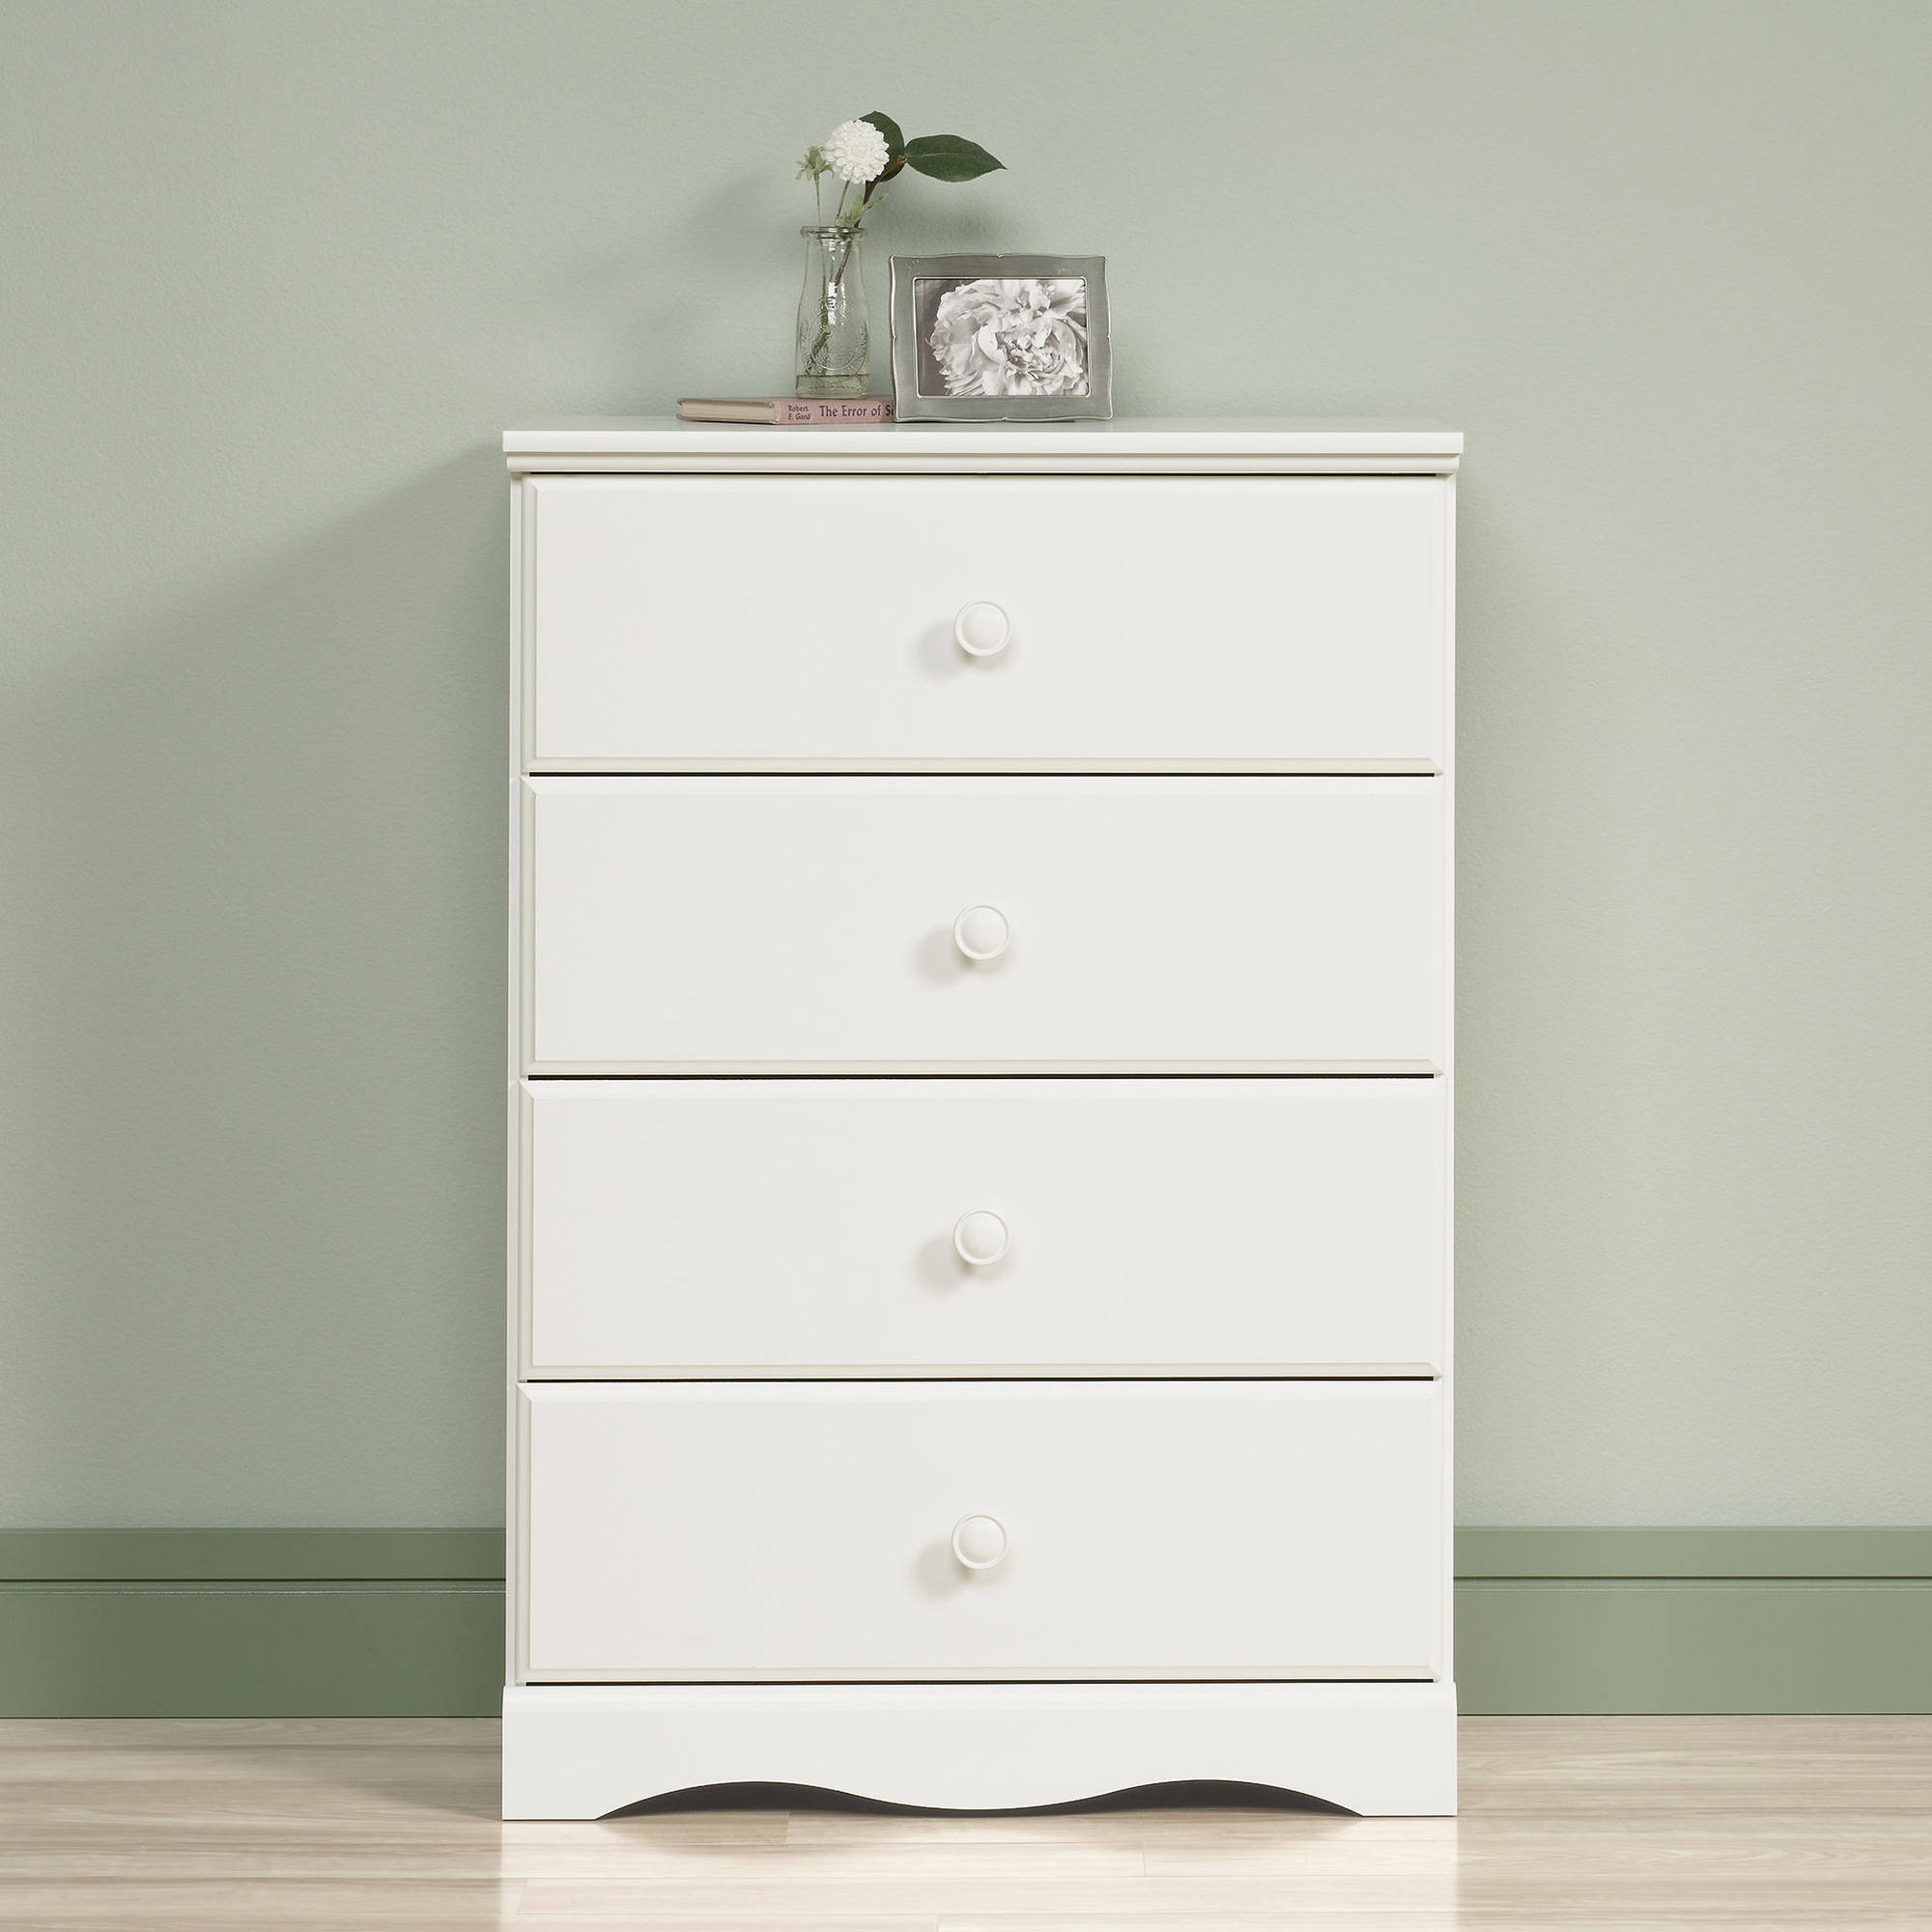 en furniture ikea effect chest stop stained storage products pull dressers bedroom of with out smooth oak askvoll gb drawers running white